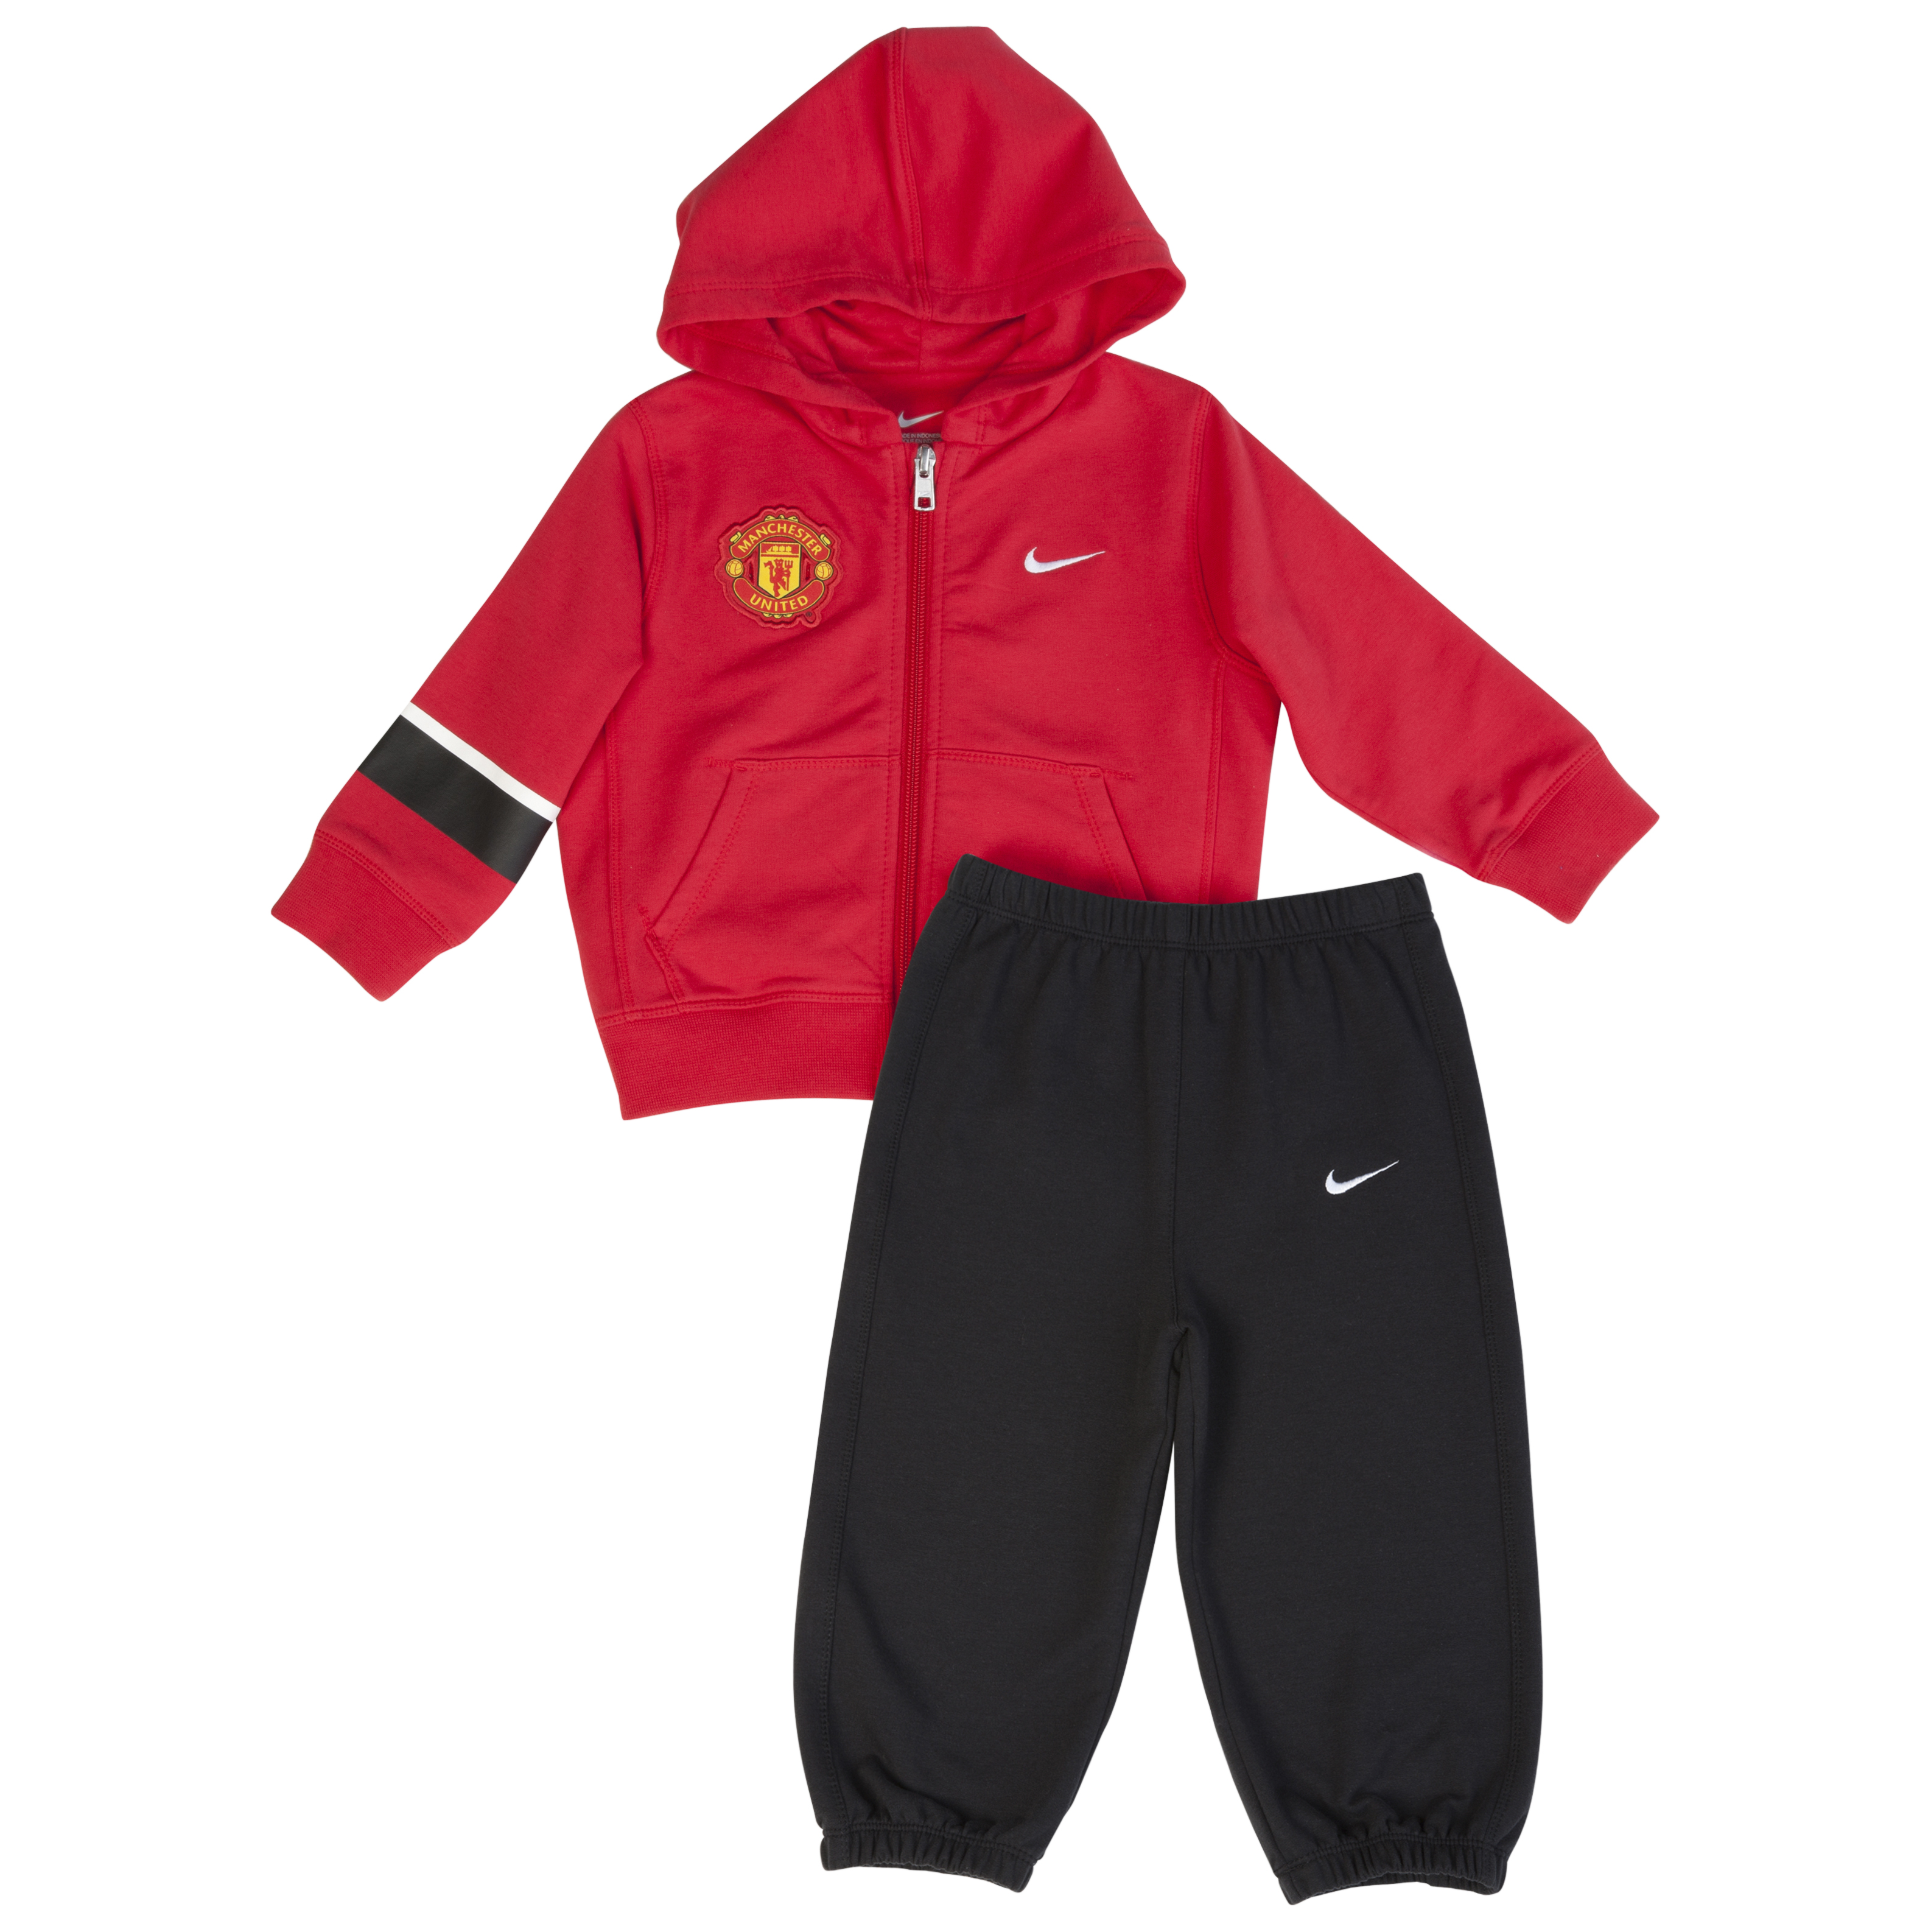 Manchester United Warm-up Tracksuit - Diablo Red/Black/White - Infants